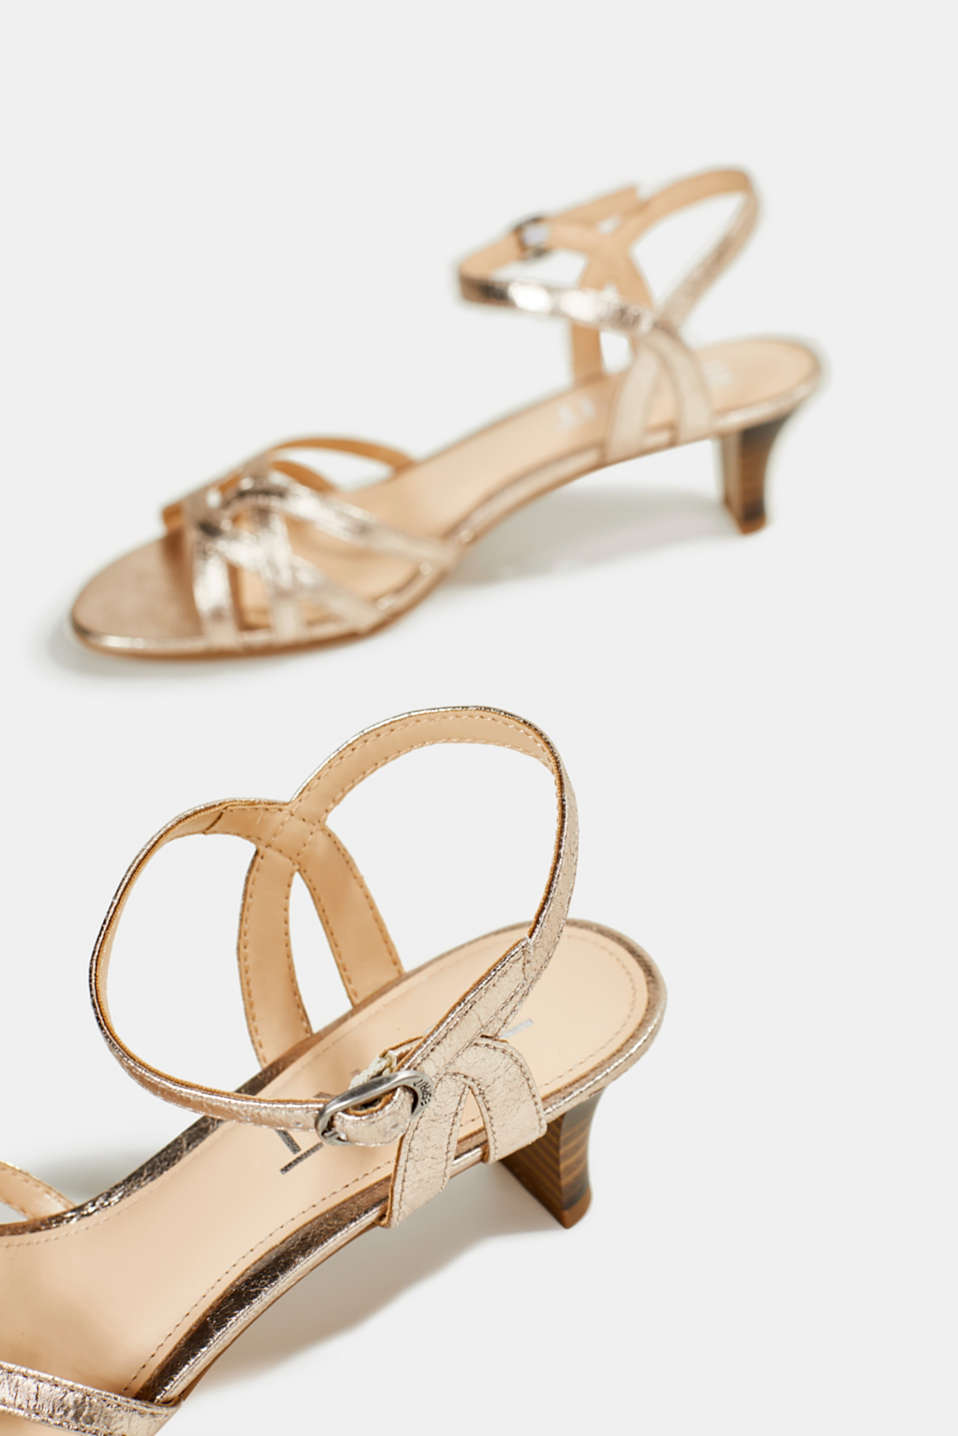 Shiny strappy sandals, SKIN BEIGE, detail image number 5